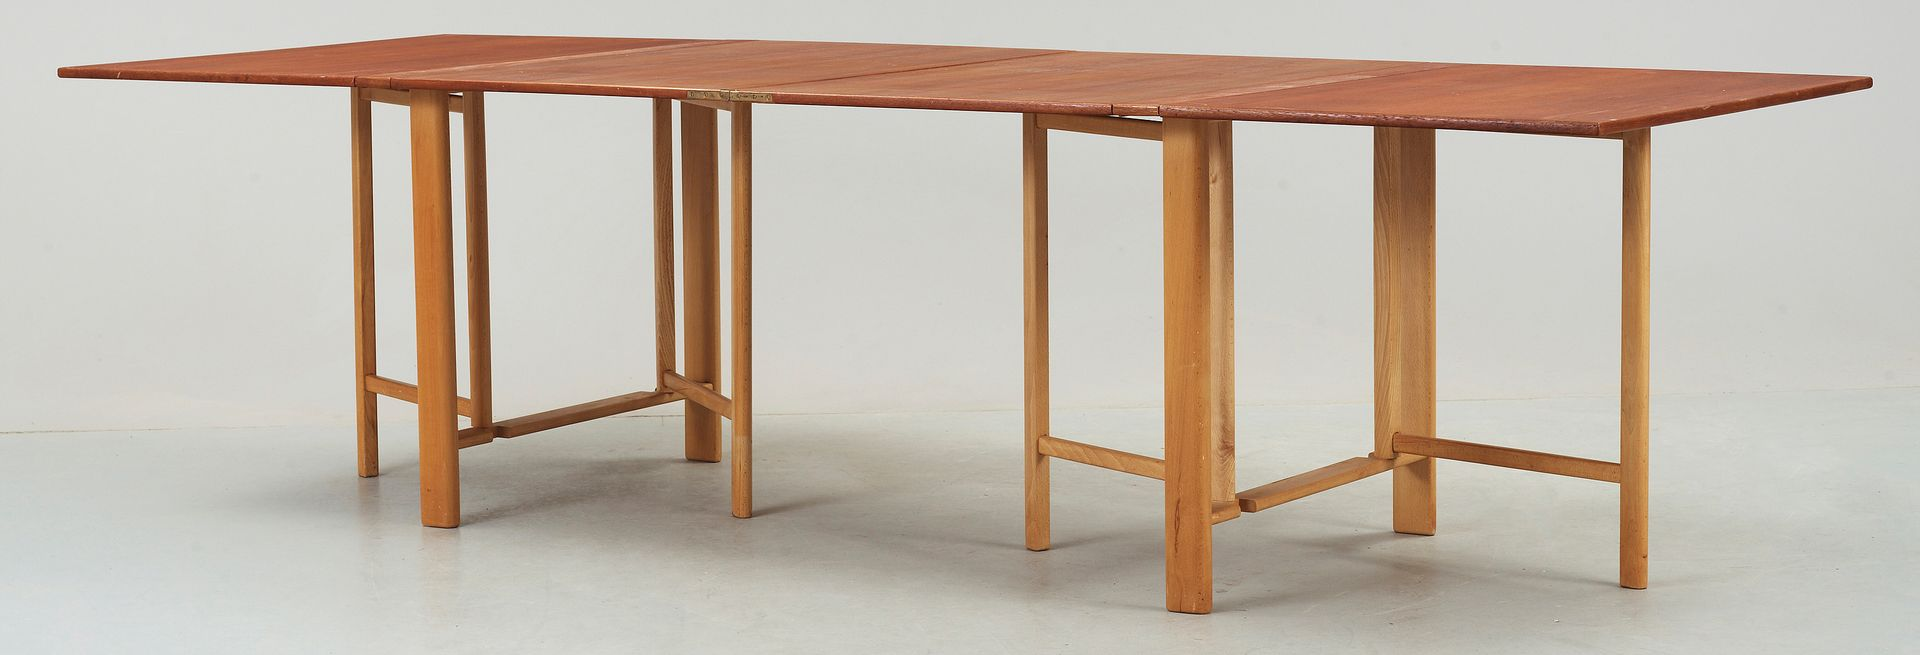 vintage teak beech extension dining table - Extension Dining Table